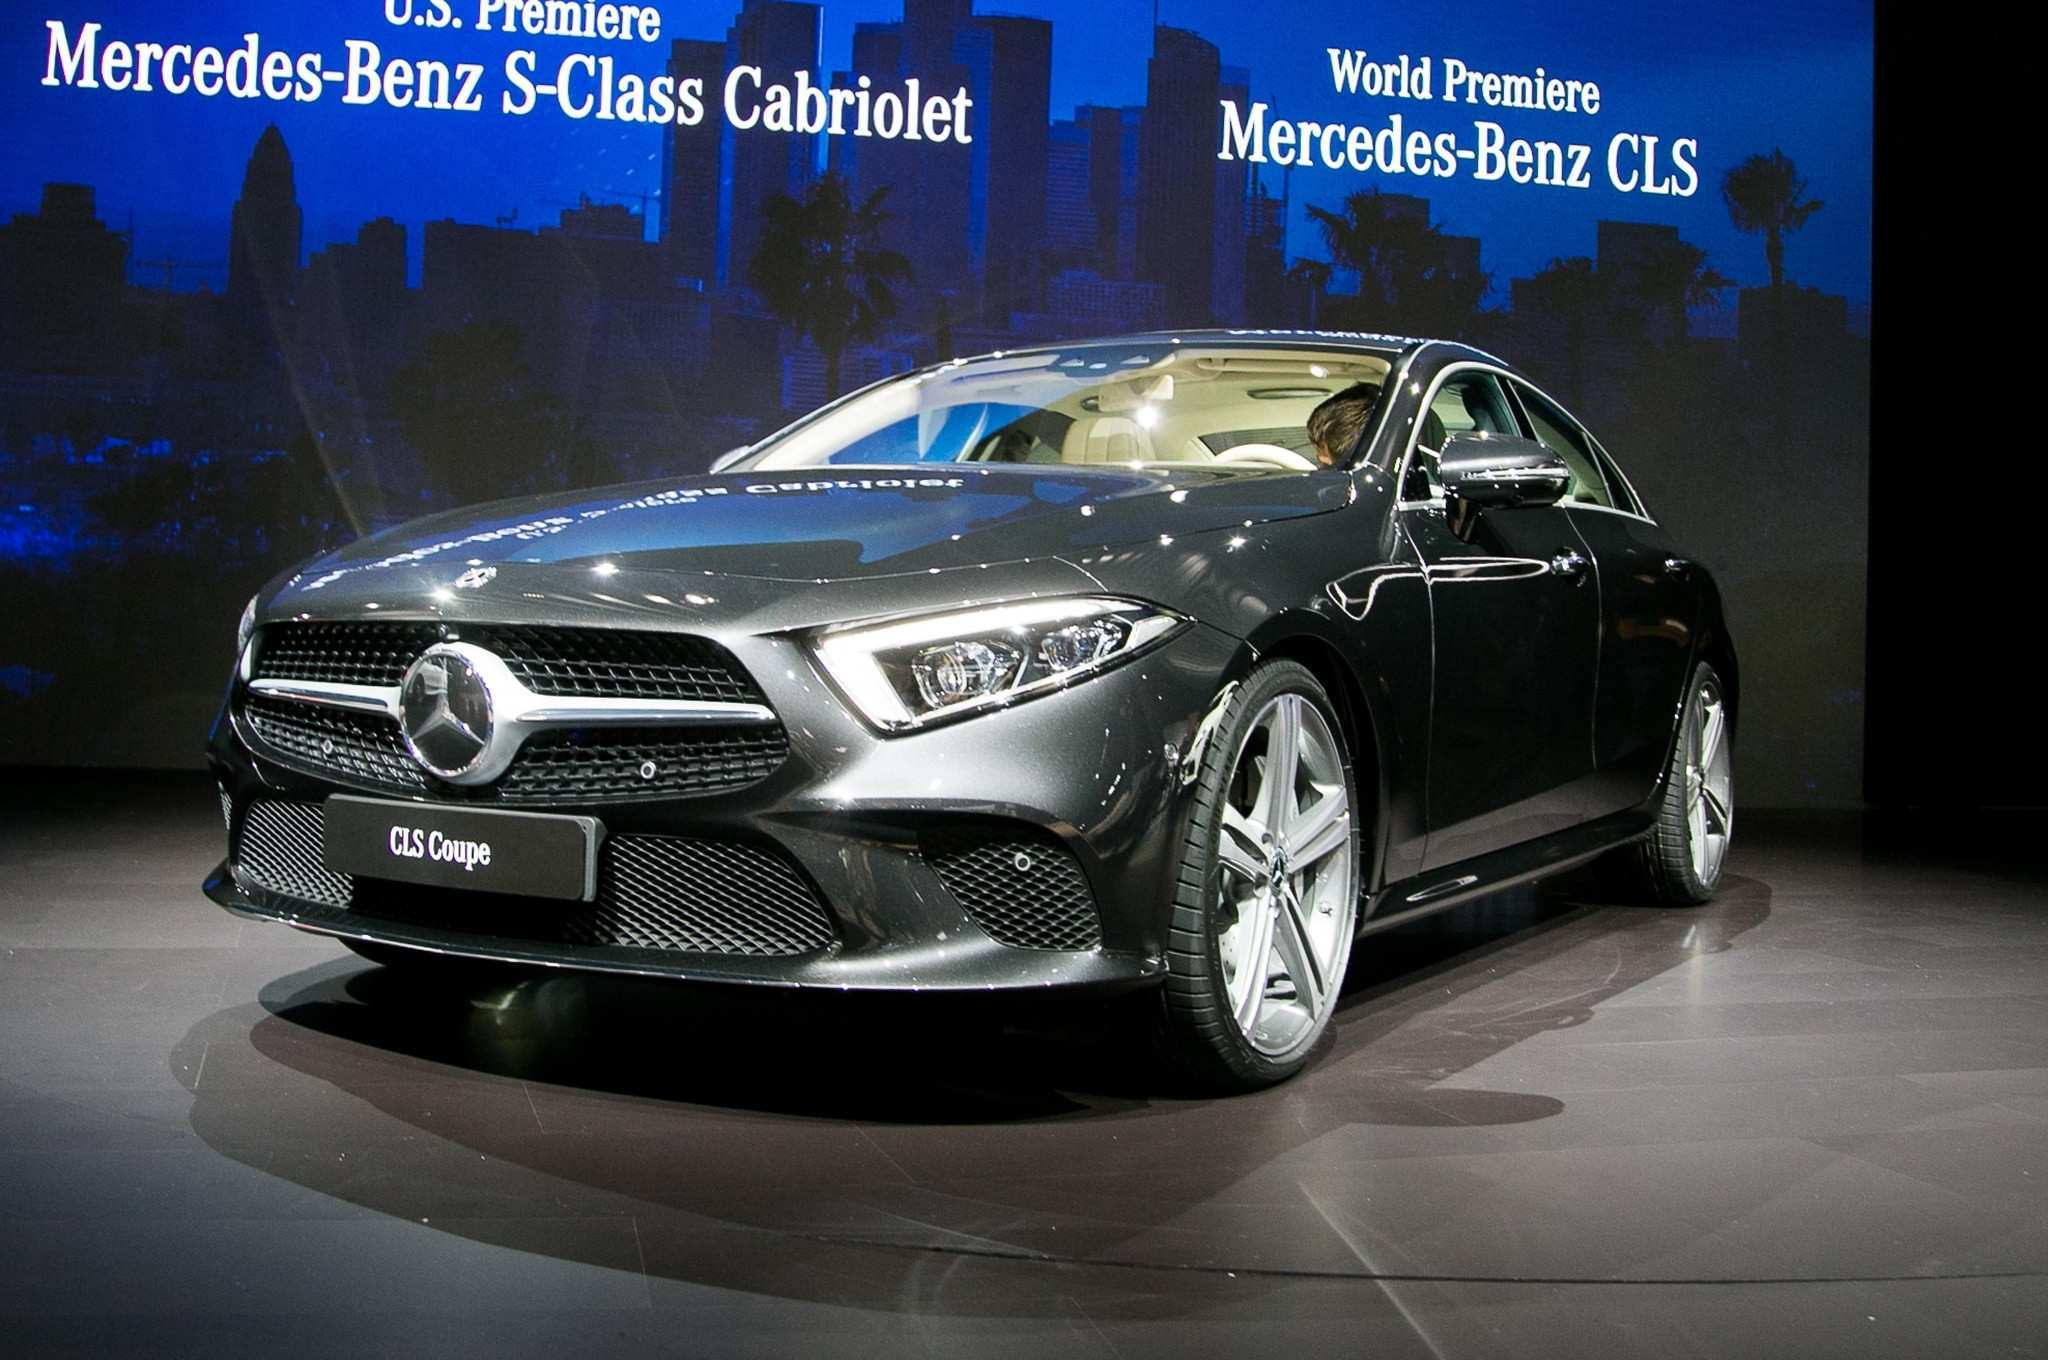 46 Best Review Mercedes Cls 2020 Exterior Model with Mercedes Cls 2020 Exterior